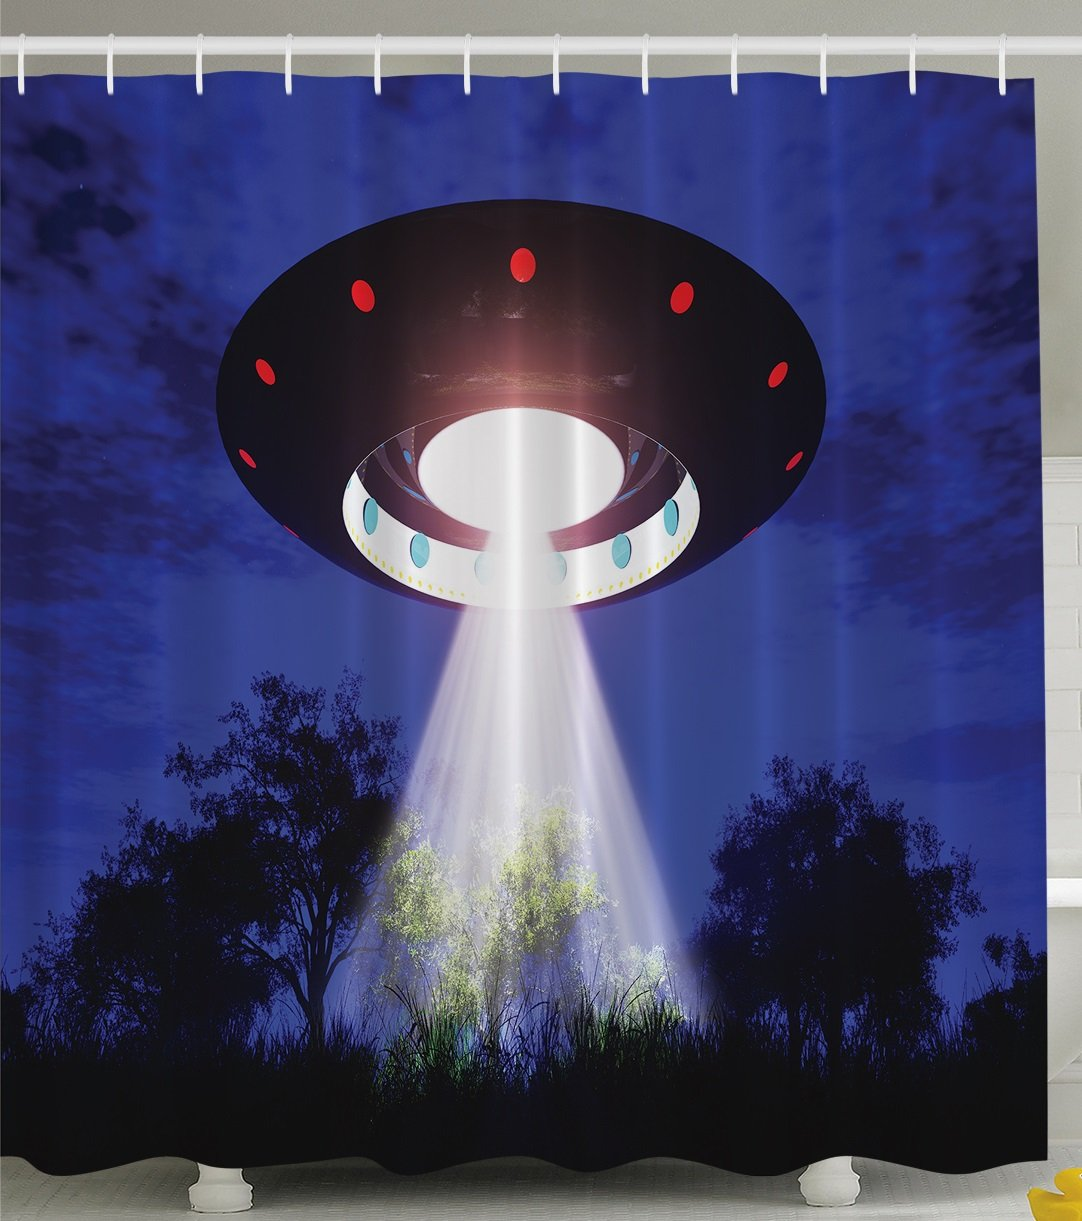 Ambesonne Space Shower Curtain Home Decor, Jupiter Neighbors Outer Space UFO Aliens Spaceship Extra Terrestrial Theme Design Print, Astronomy Gifts, Polyester Fabric Bathroom Set, Blue Black White